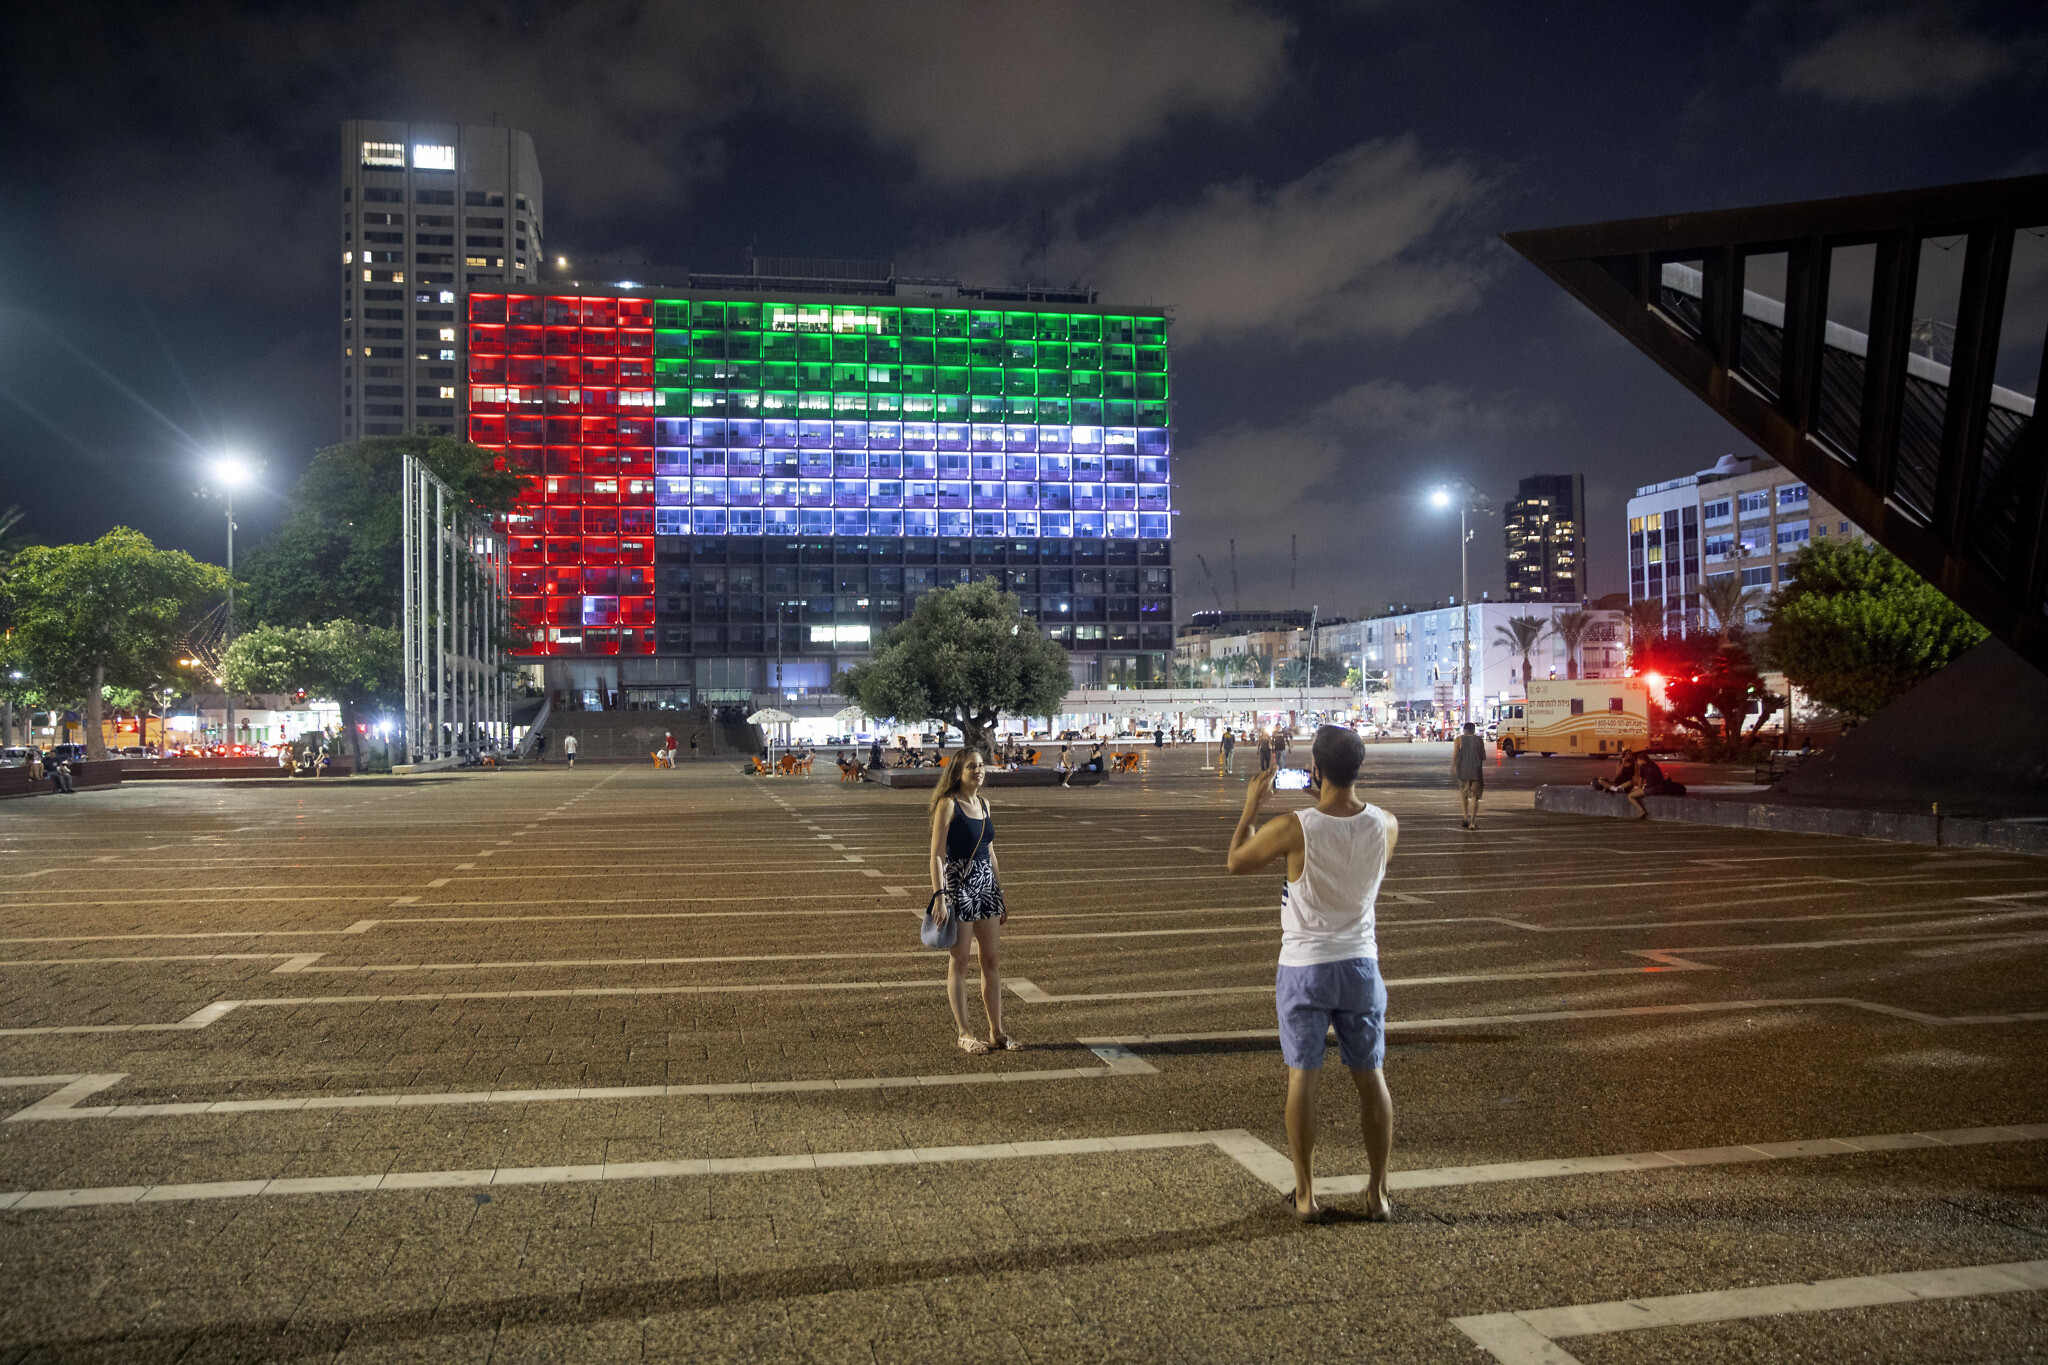 As Israel, UAE ties come out of closet, businesses are abuzz with excitement   The Times of Israel